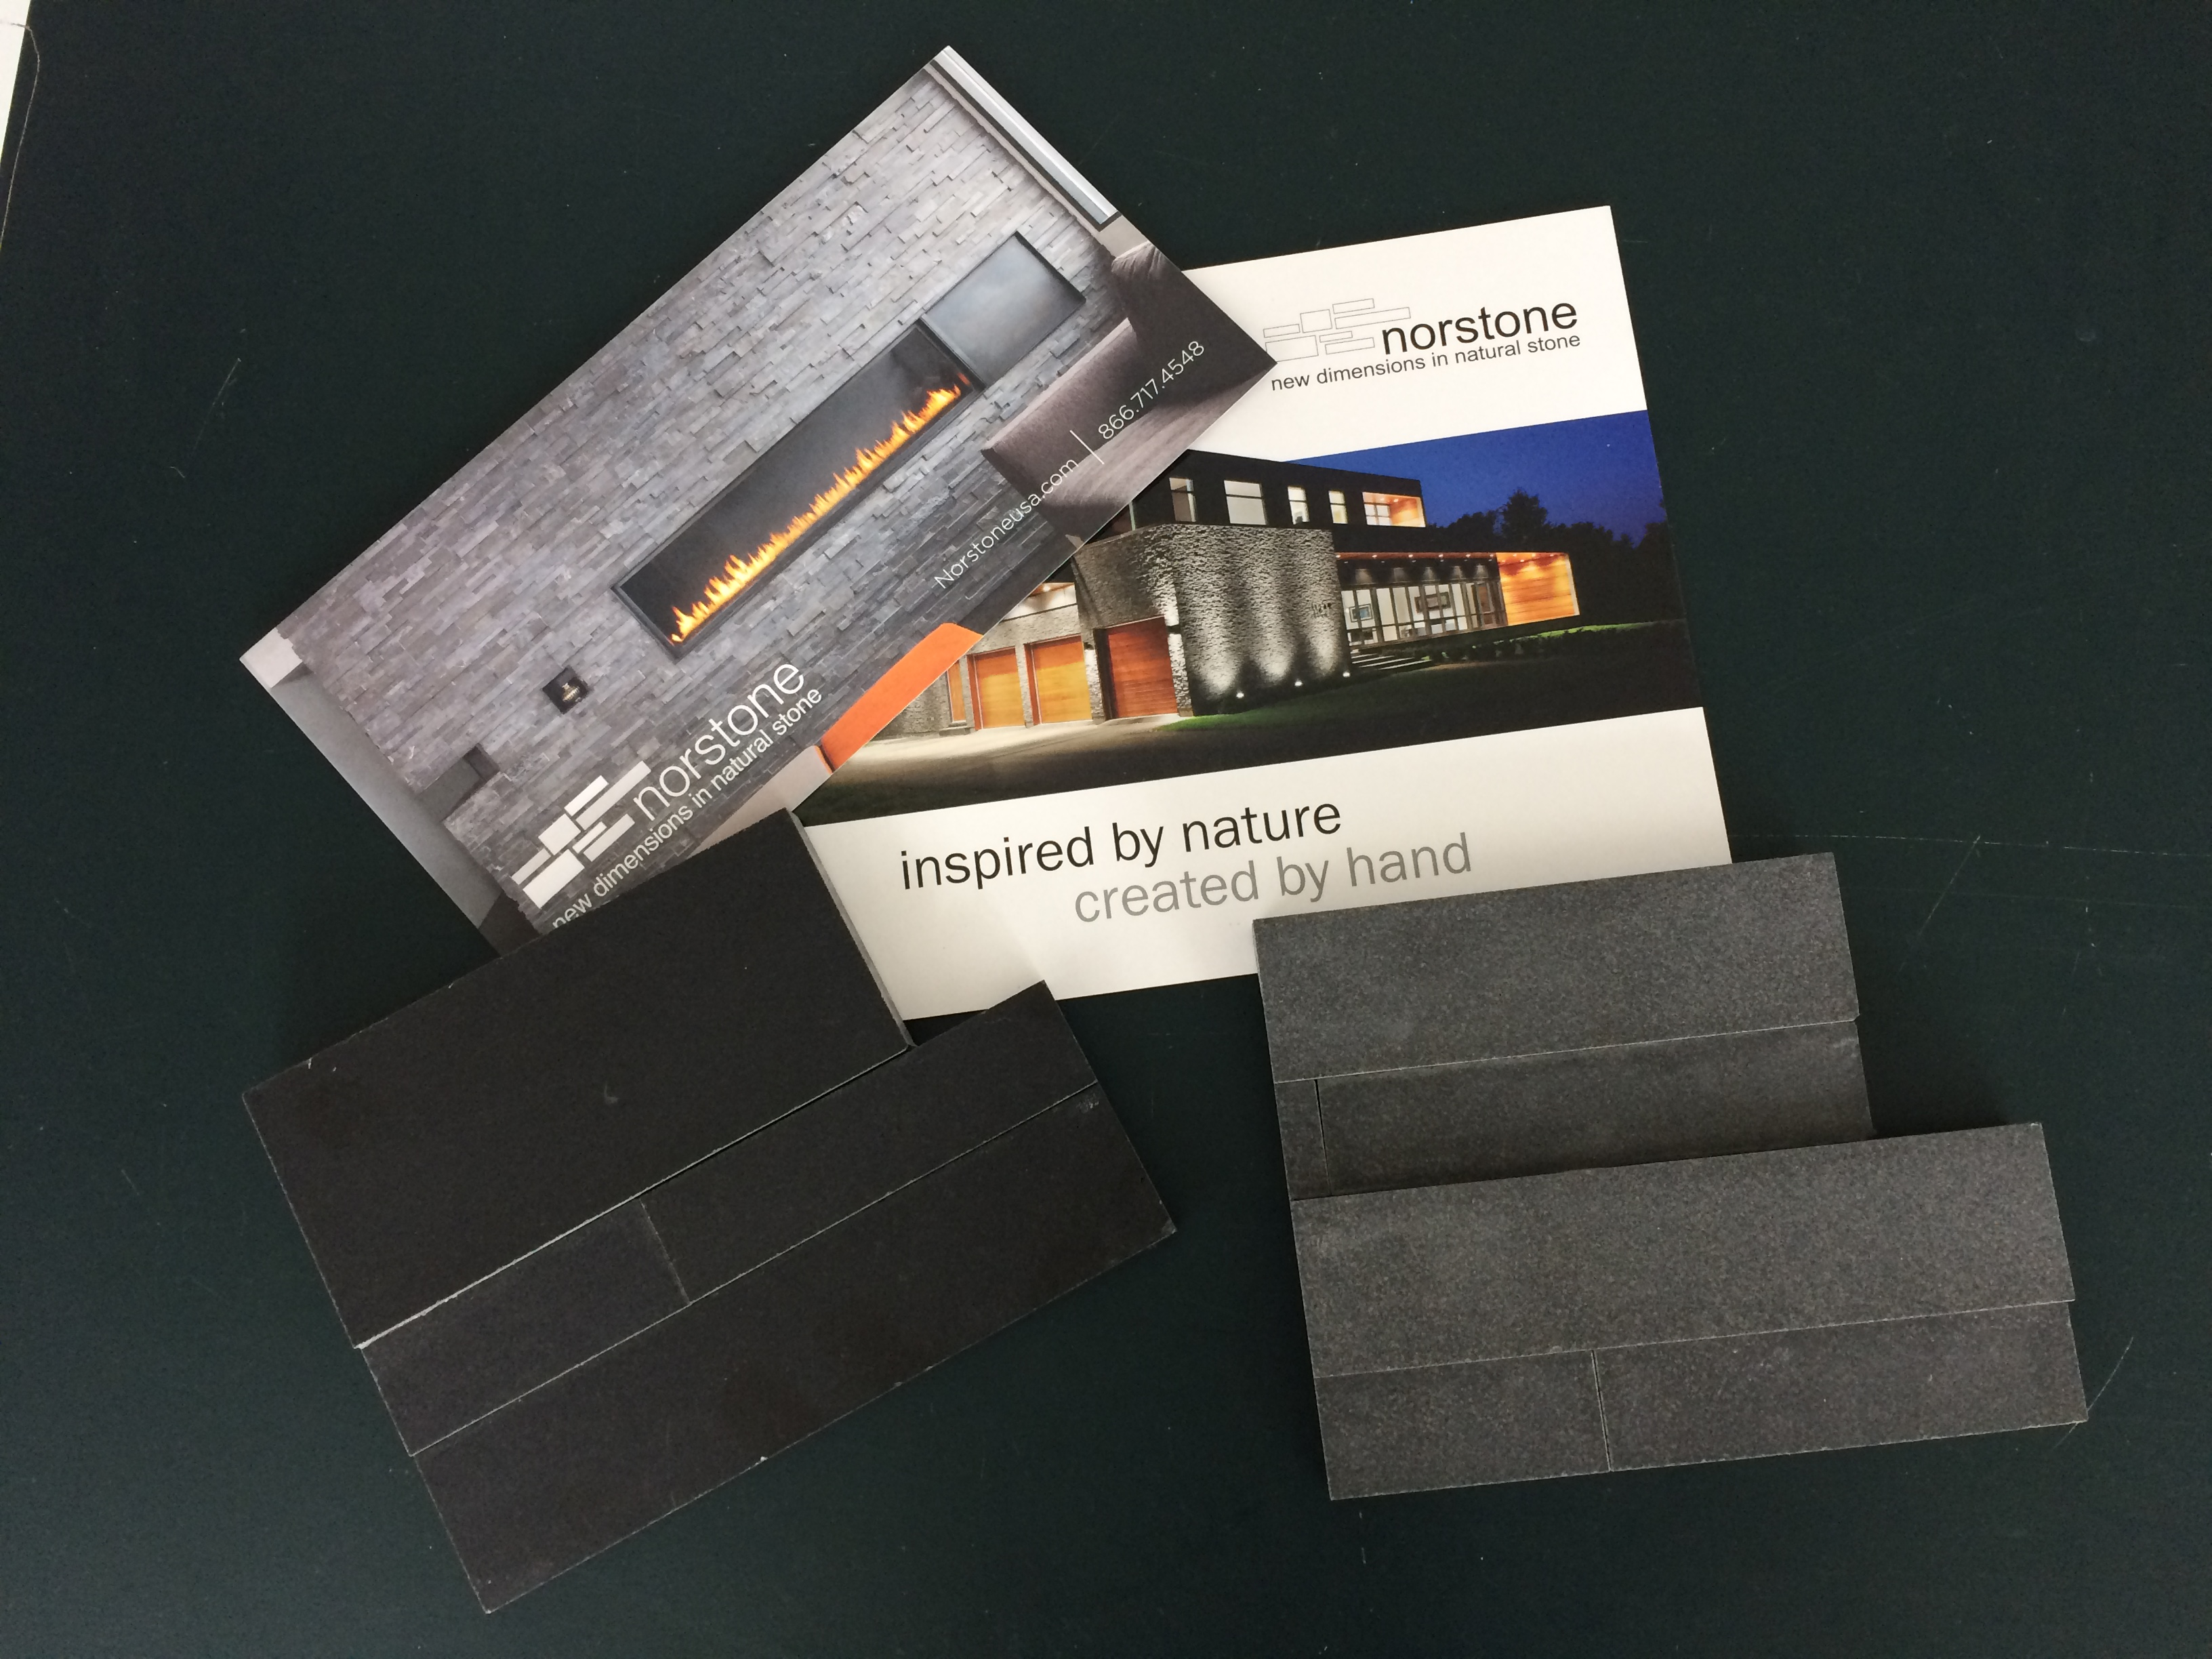 Norstone Sample Literature for Stone Veneer